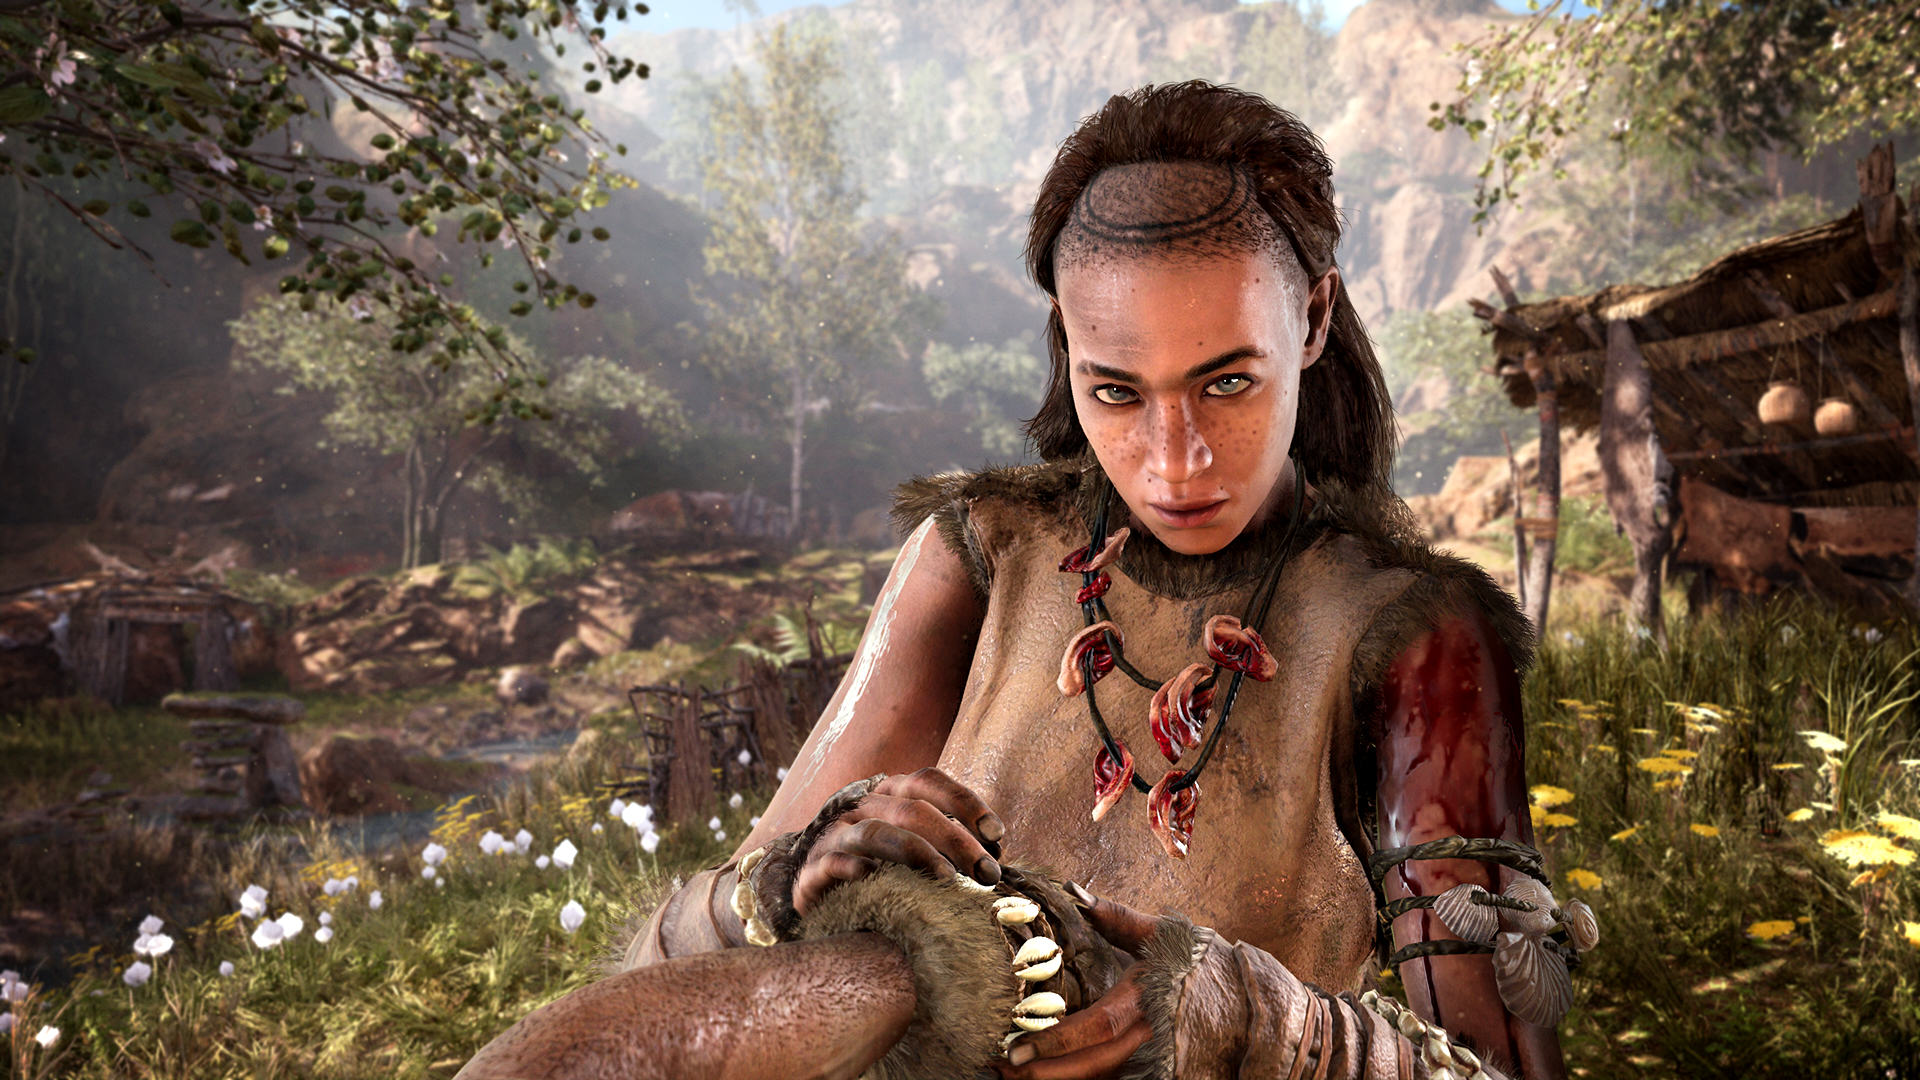 An Exclusive Look At Far Cry Primal Ahead Of Release Day FCP 02 Gatherer Screenshots PREVIEW PR 160126 6pm CET 1453716678